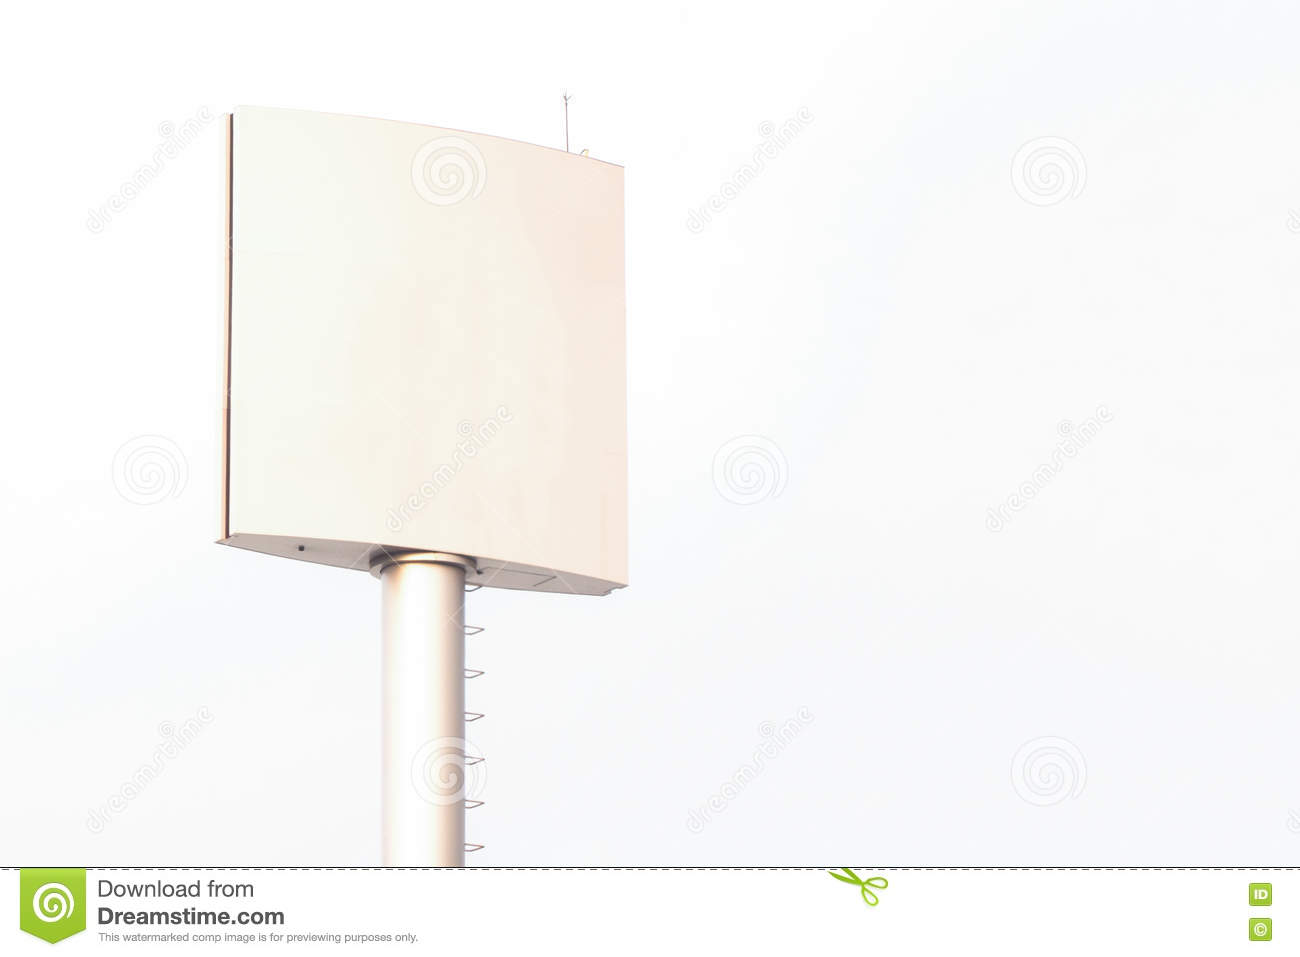 Blank billboard for outdoor advertising poster or blank billboard at day time for advertisement.